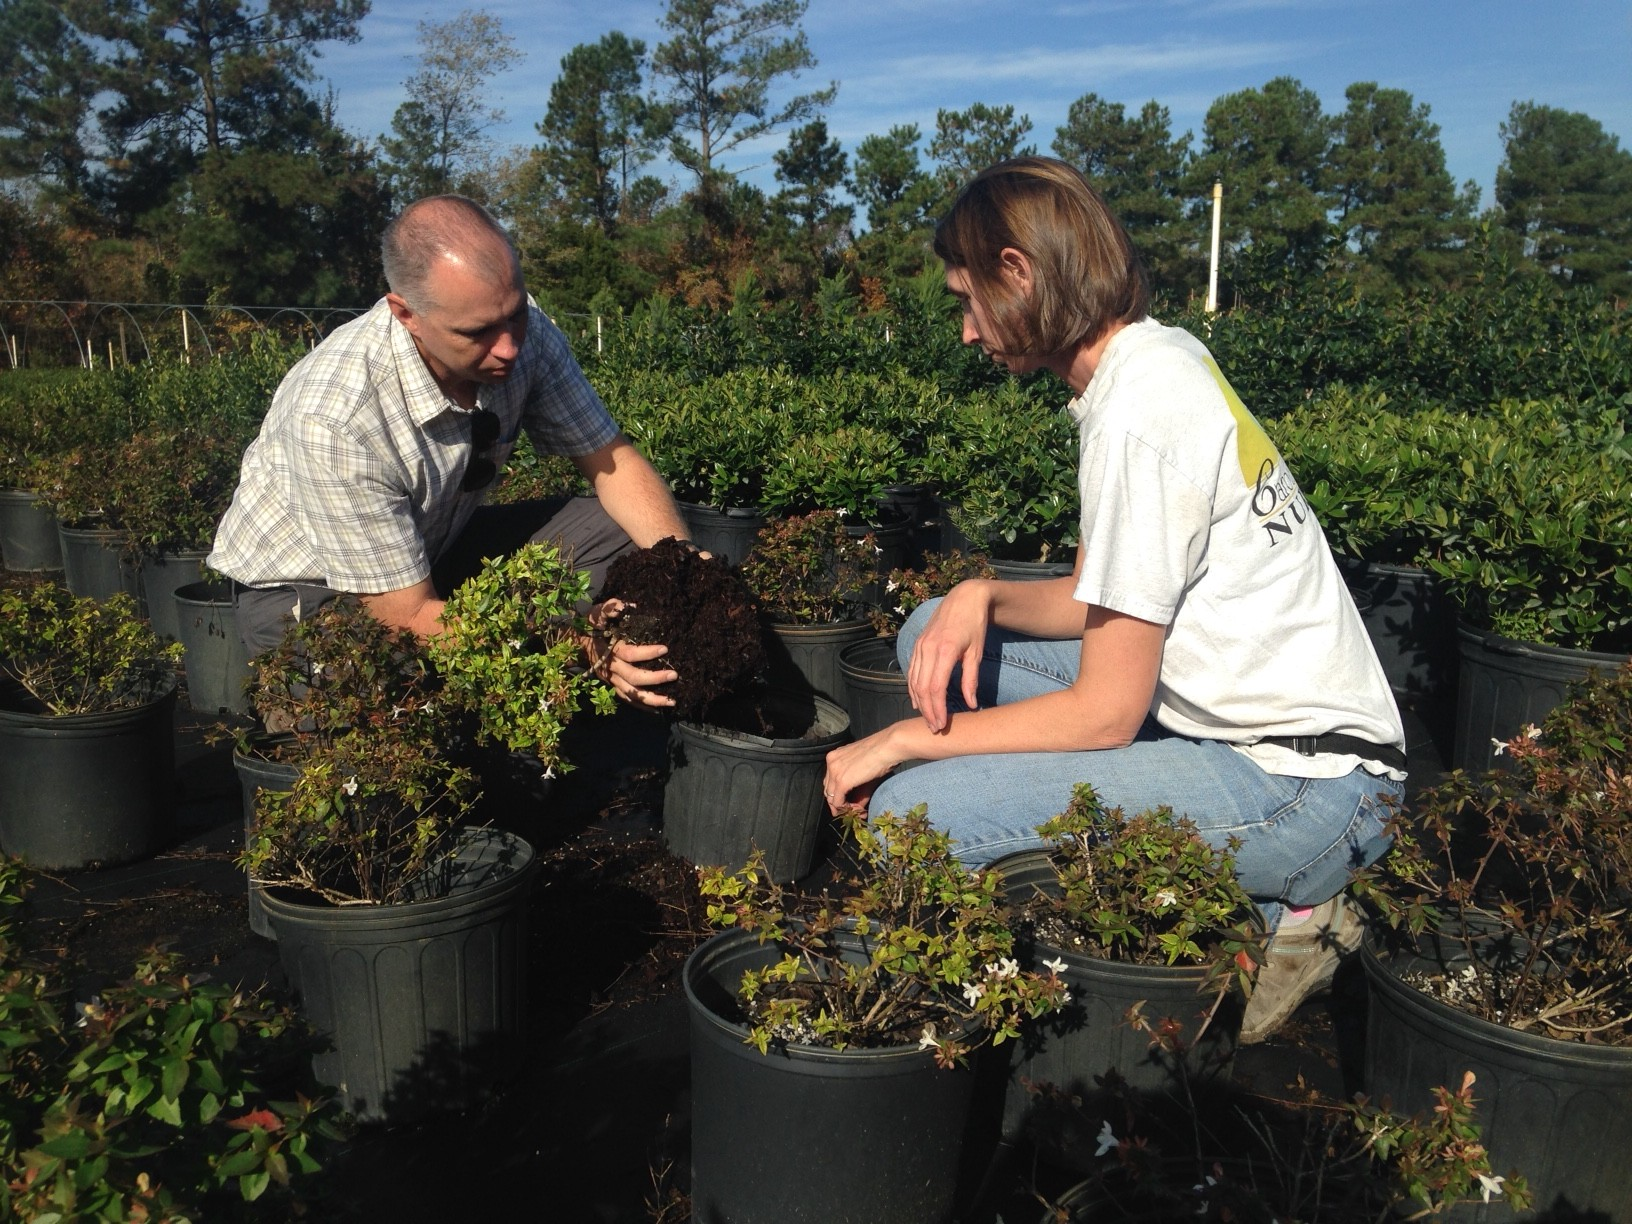 Danny will be working with Nursery and Greenhouse Growers in eastern NC starting March 1, 2016.